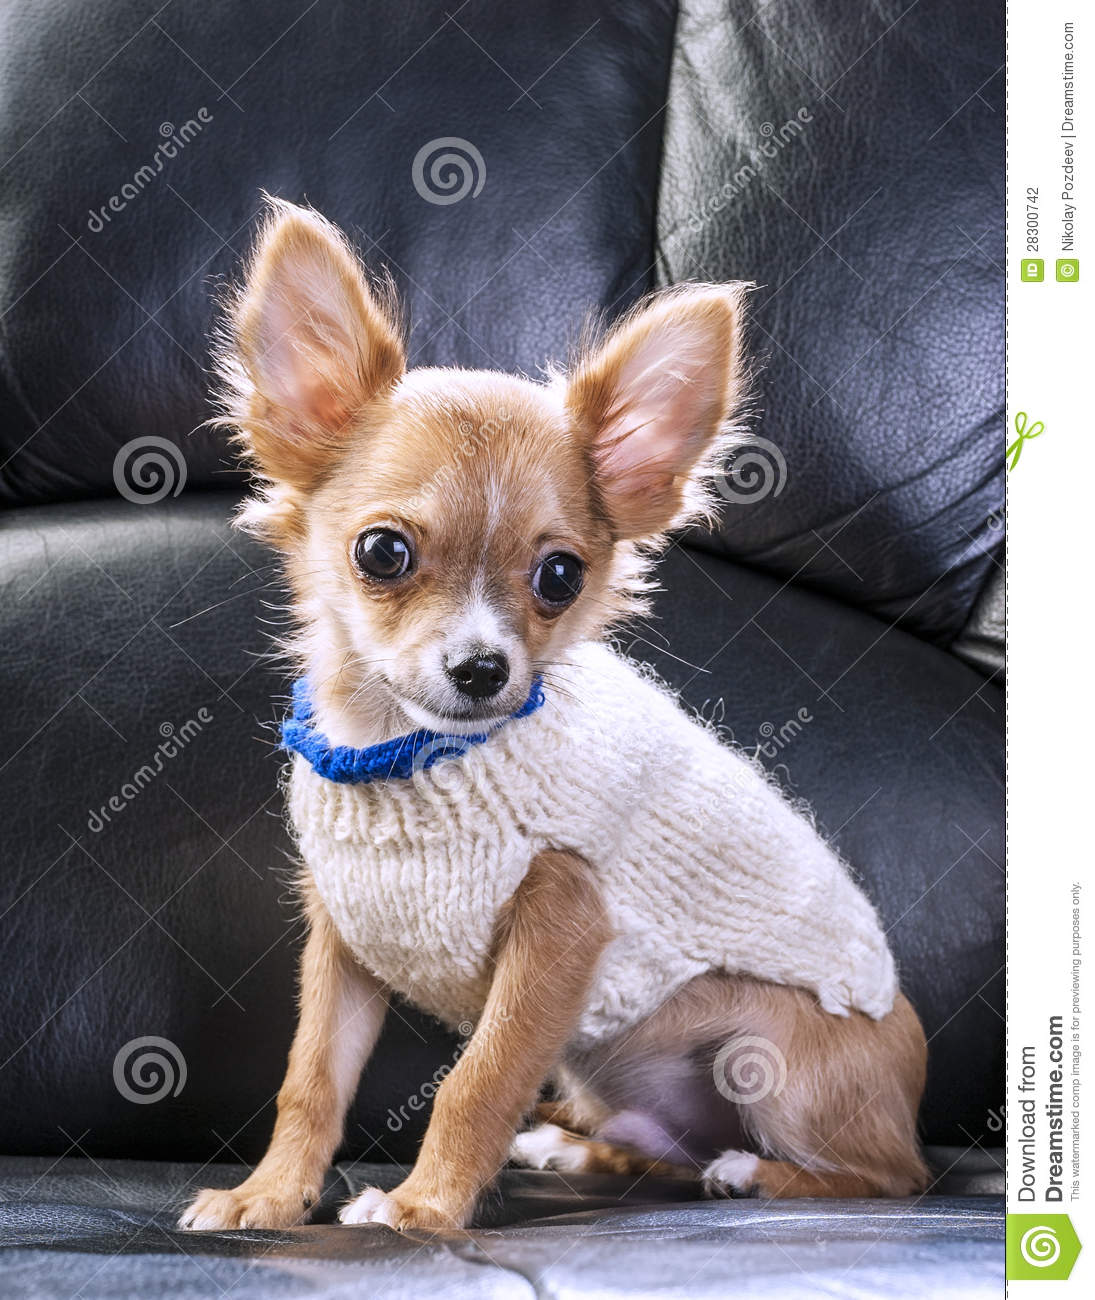 cute chihuahua puppy wearing white sweater stock photo image 28300742. Black Bedroom Furniture Sets. Home Design Ideas